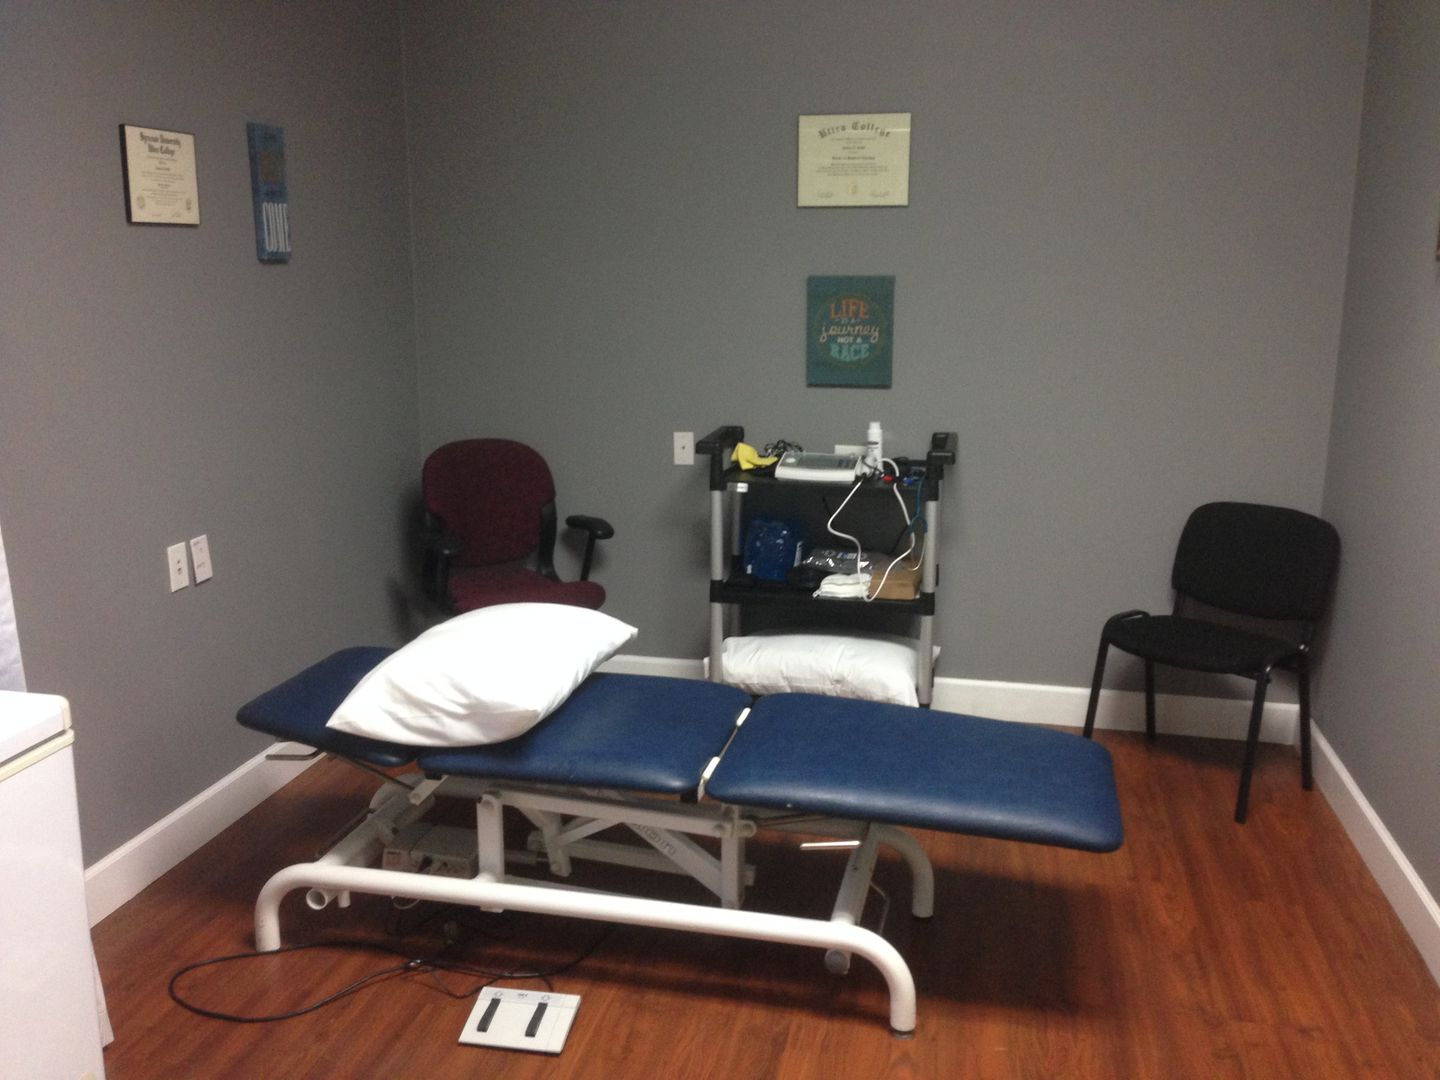 Herniated disc physical therapy - Physical Therapy For Sports Injuries Arthritis Migraines Back Pain Sciatica Neck